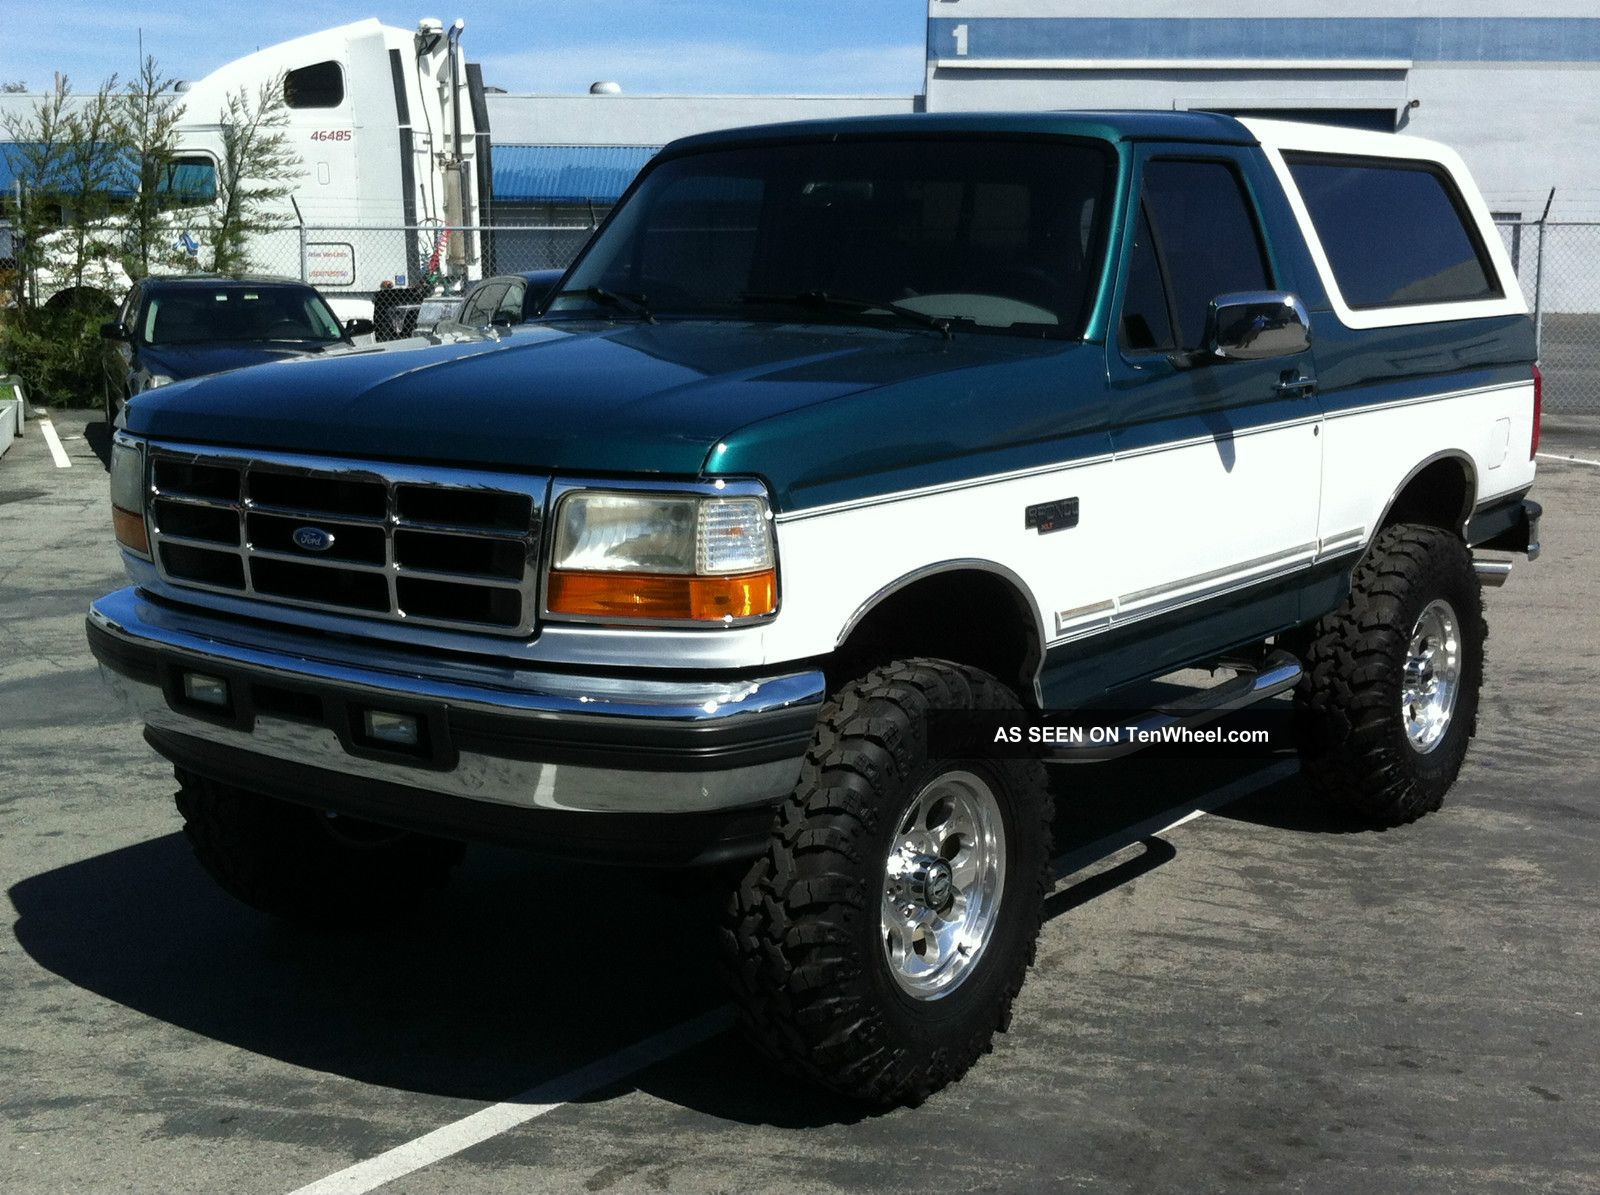 1996 ford bronco information and photos zombiedrive rh zombdrive com